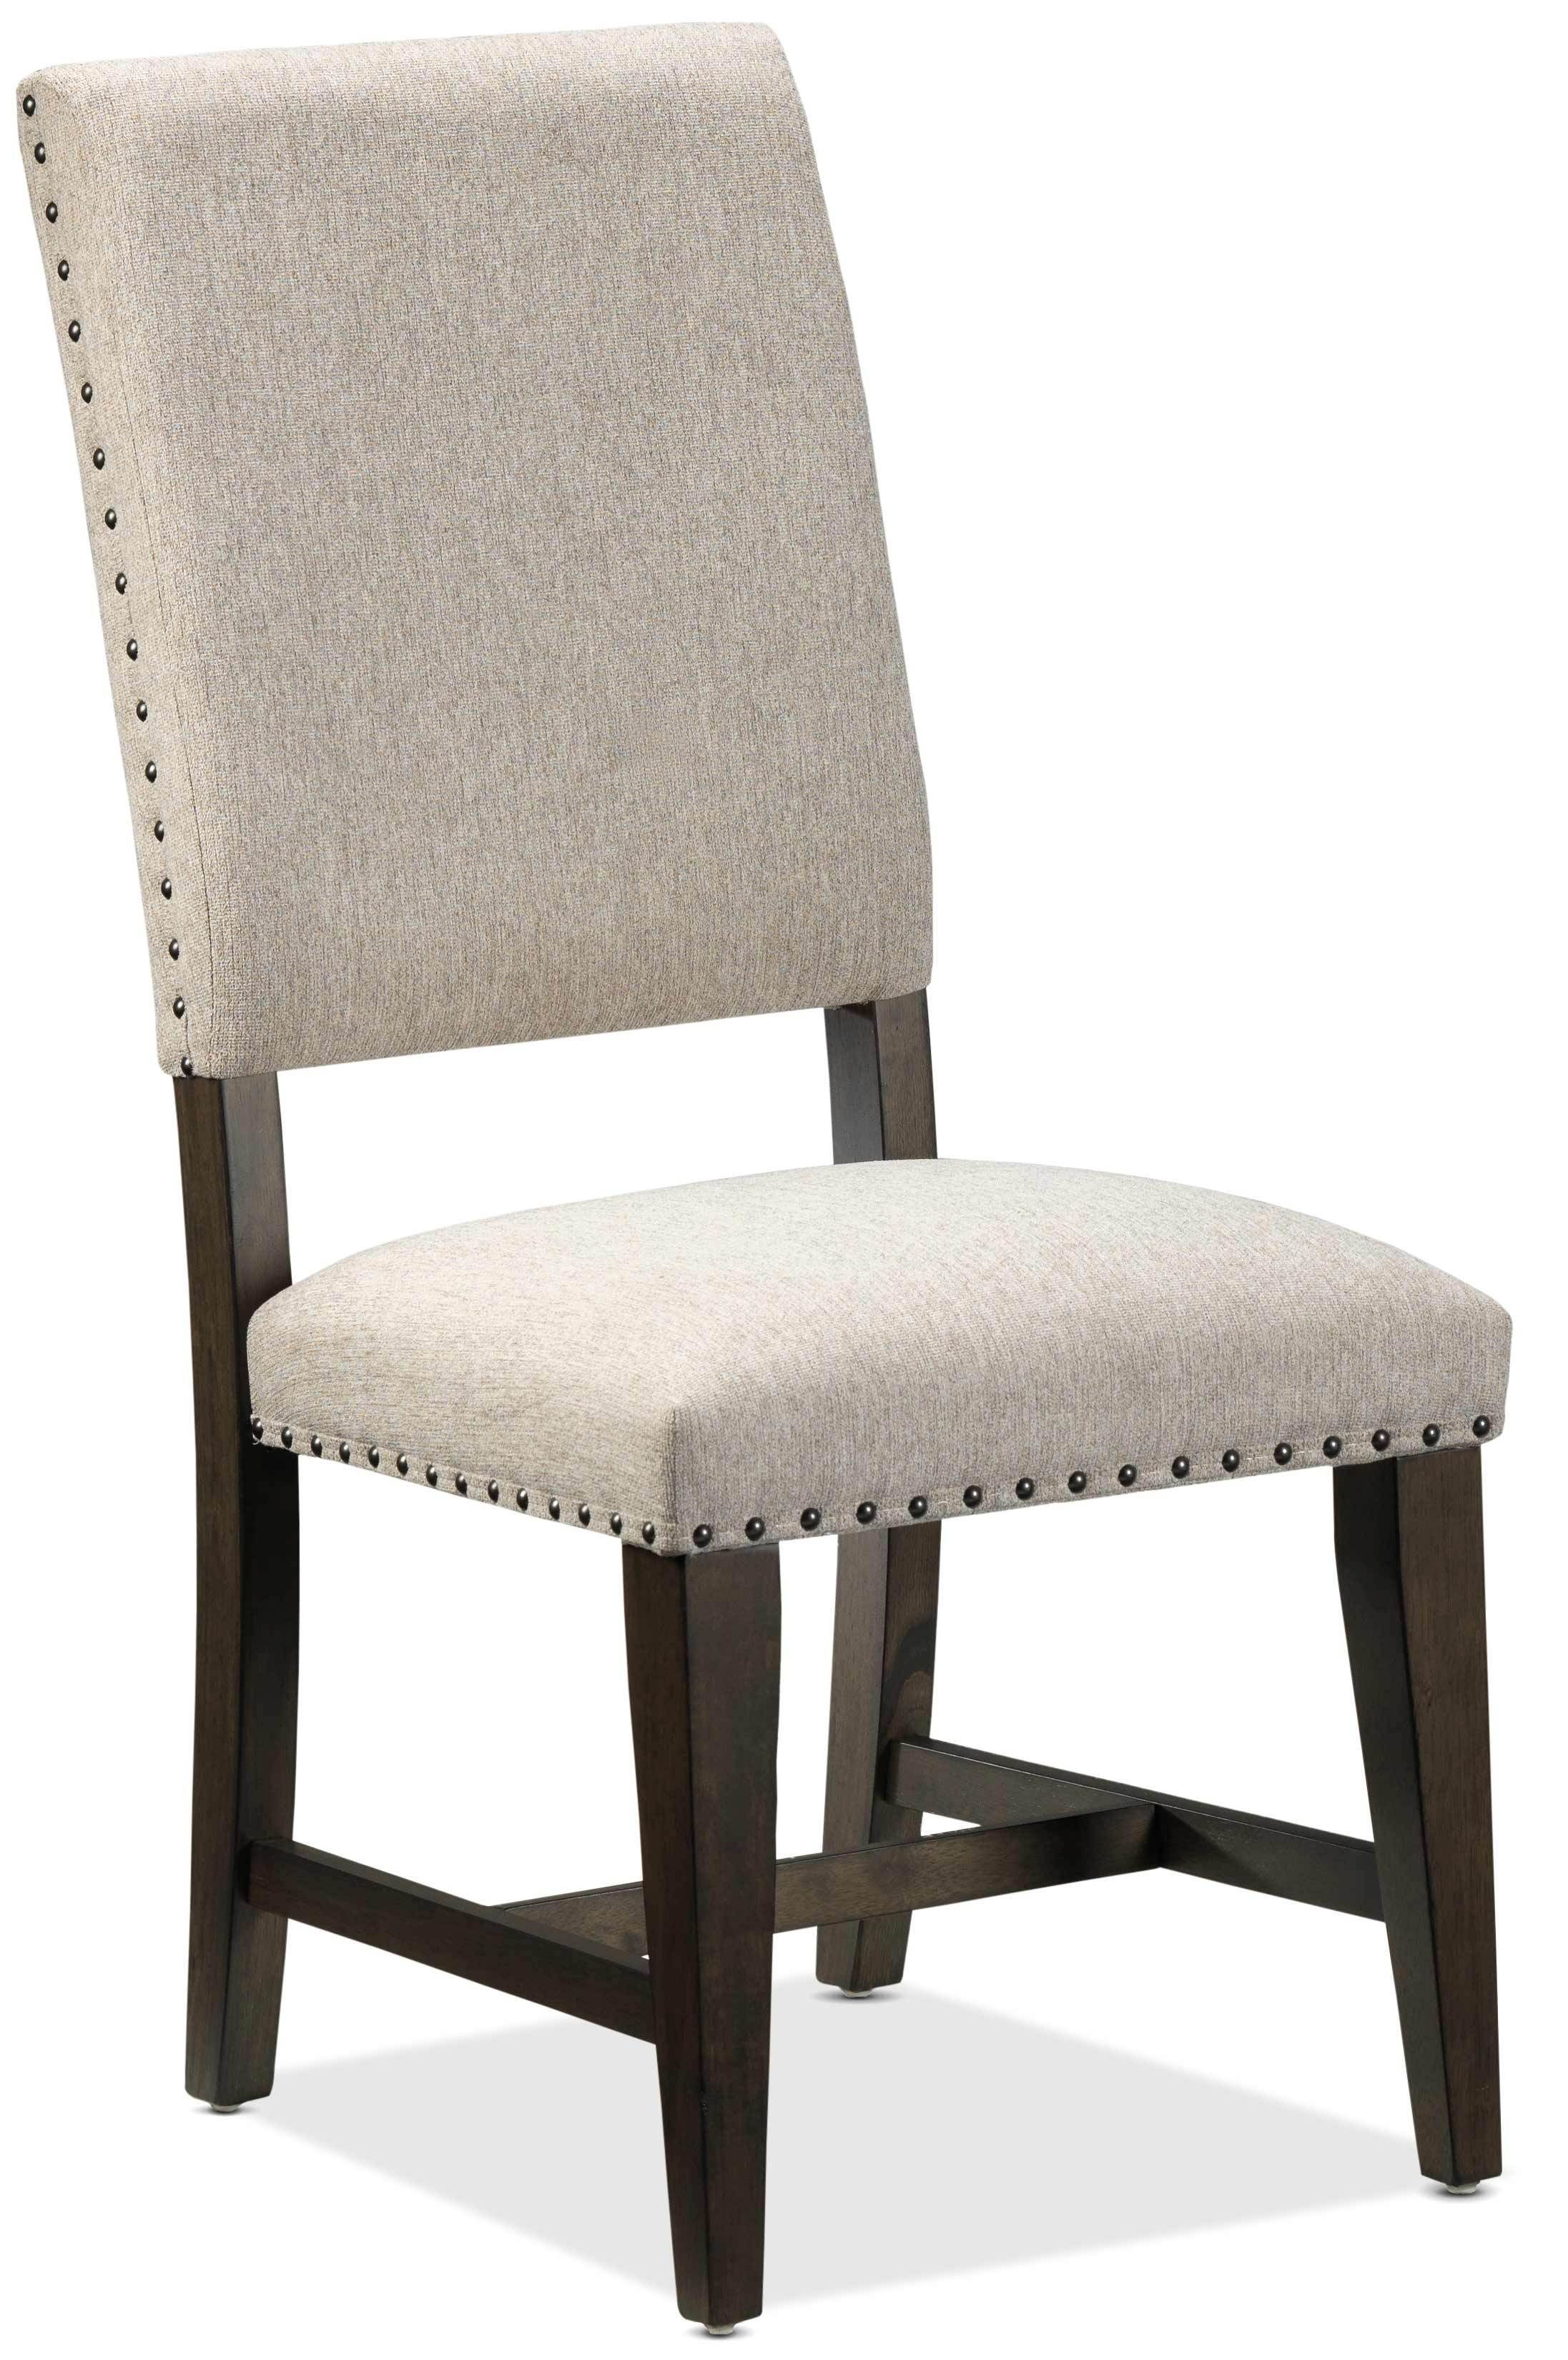 Flanigan Dining Chair Beige And Espresso With Images Dining